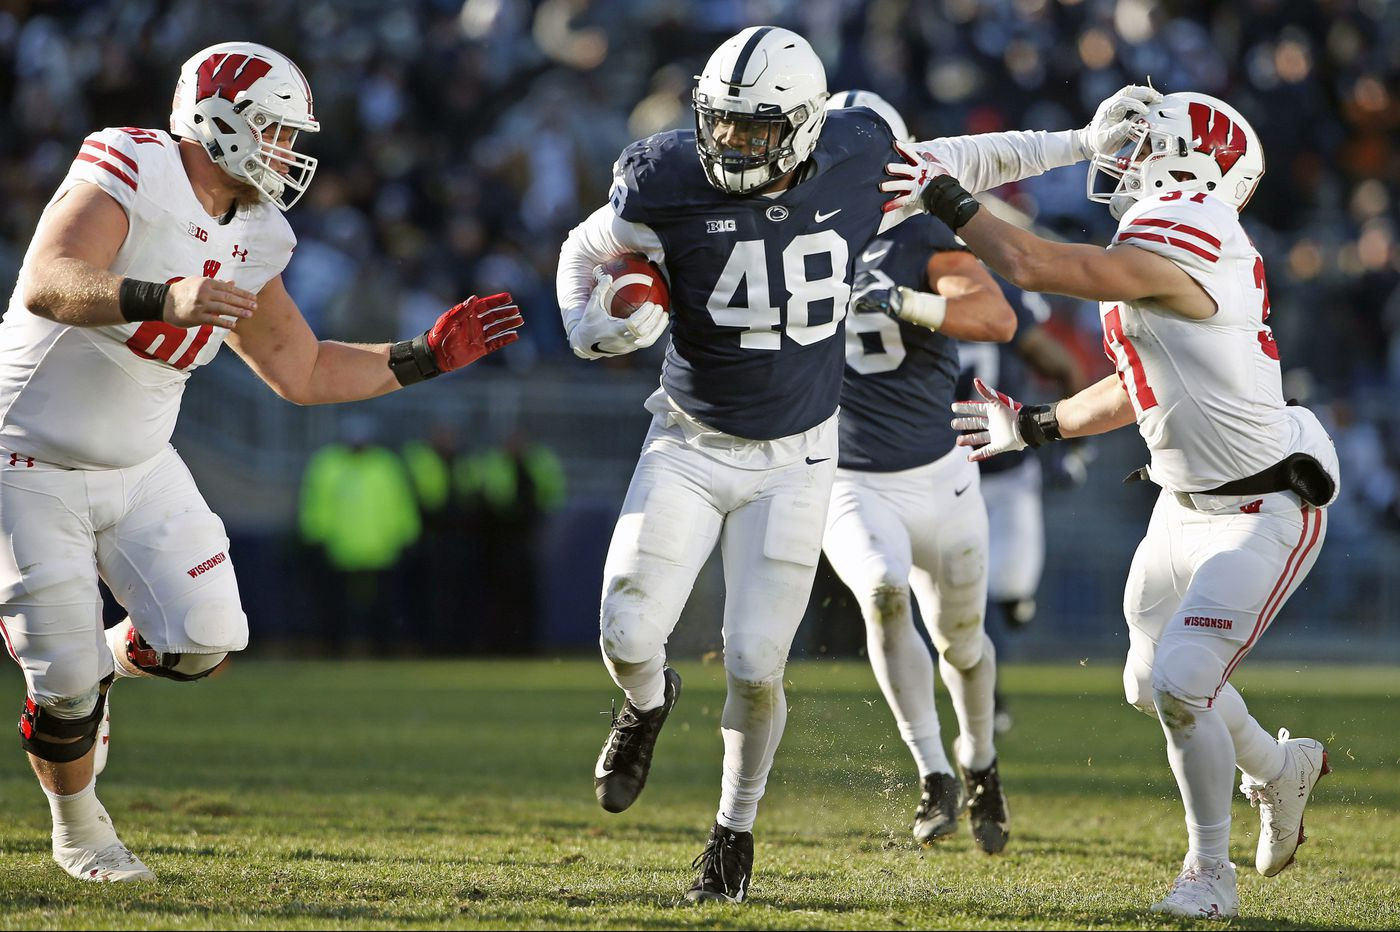 Penn State's Shareef Miller finds some unpleasantness while trying to claim a fumble against Rutgers